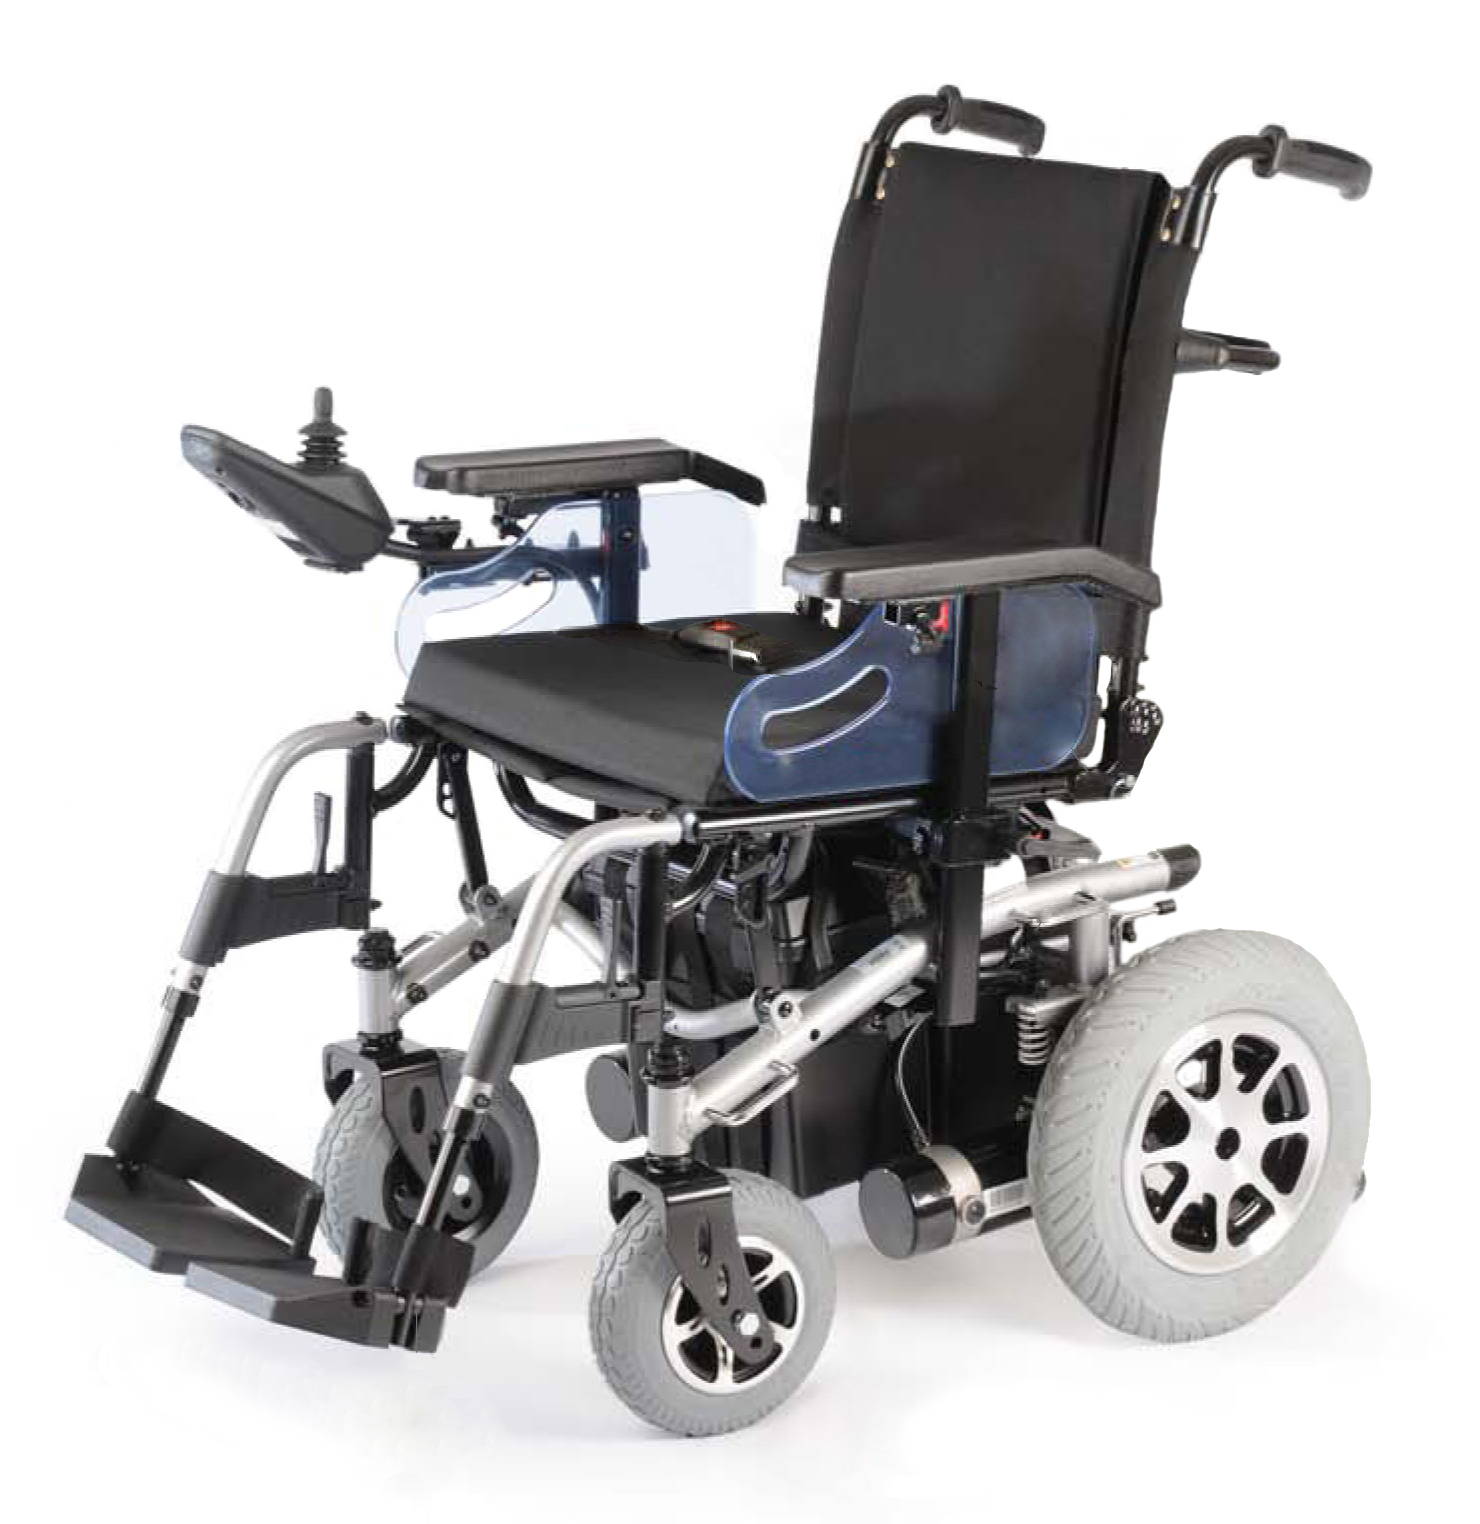 Rent a standard electrico wheelchair in Marbella